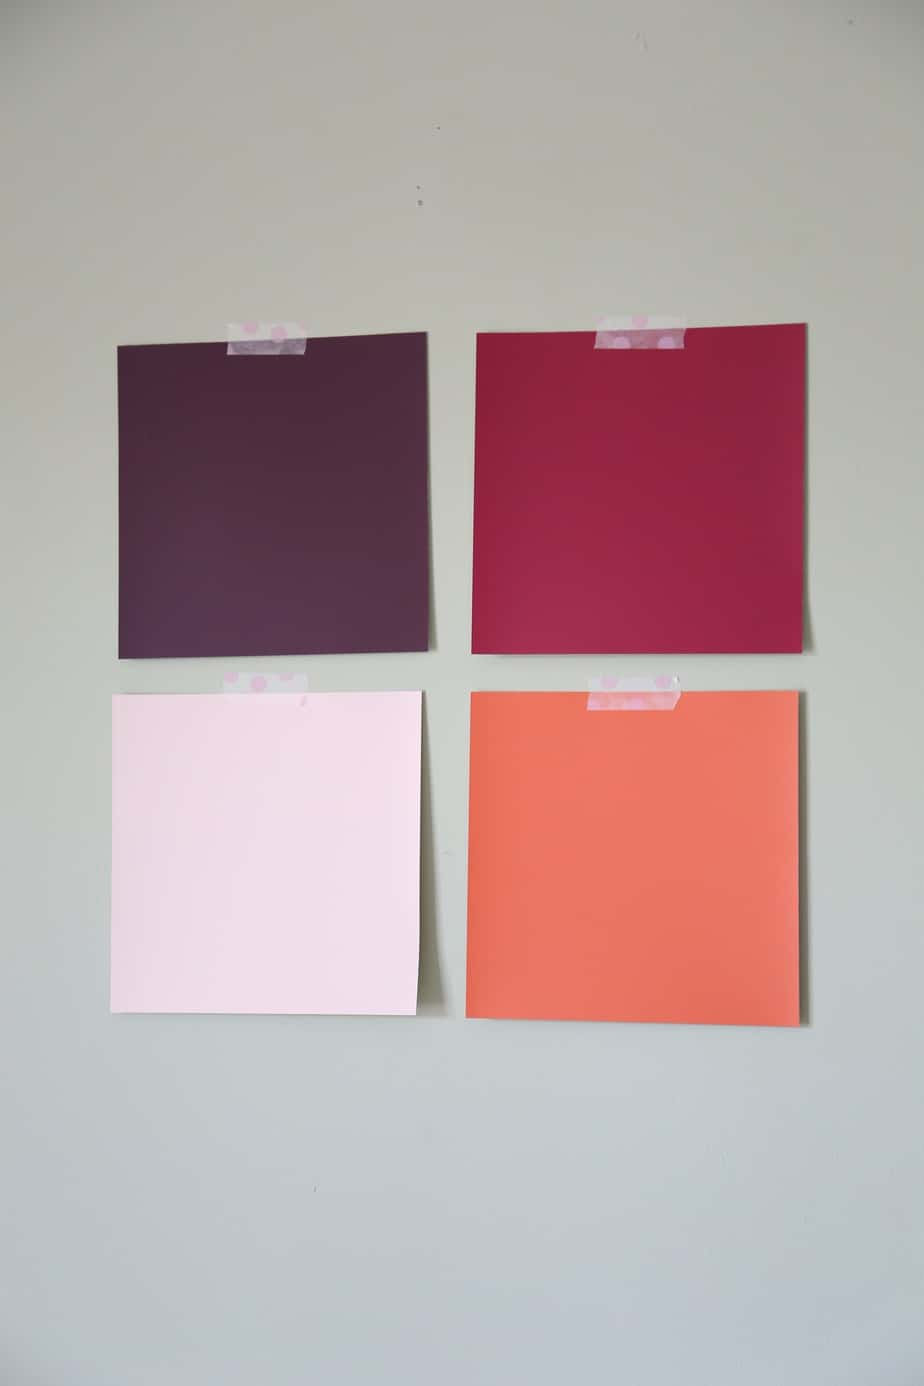 Order free 8x8 Color Swatches from PPG Voice of Color